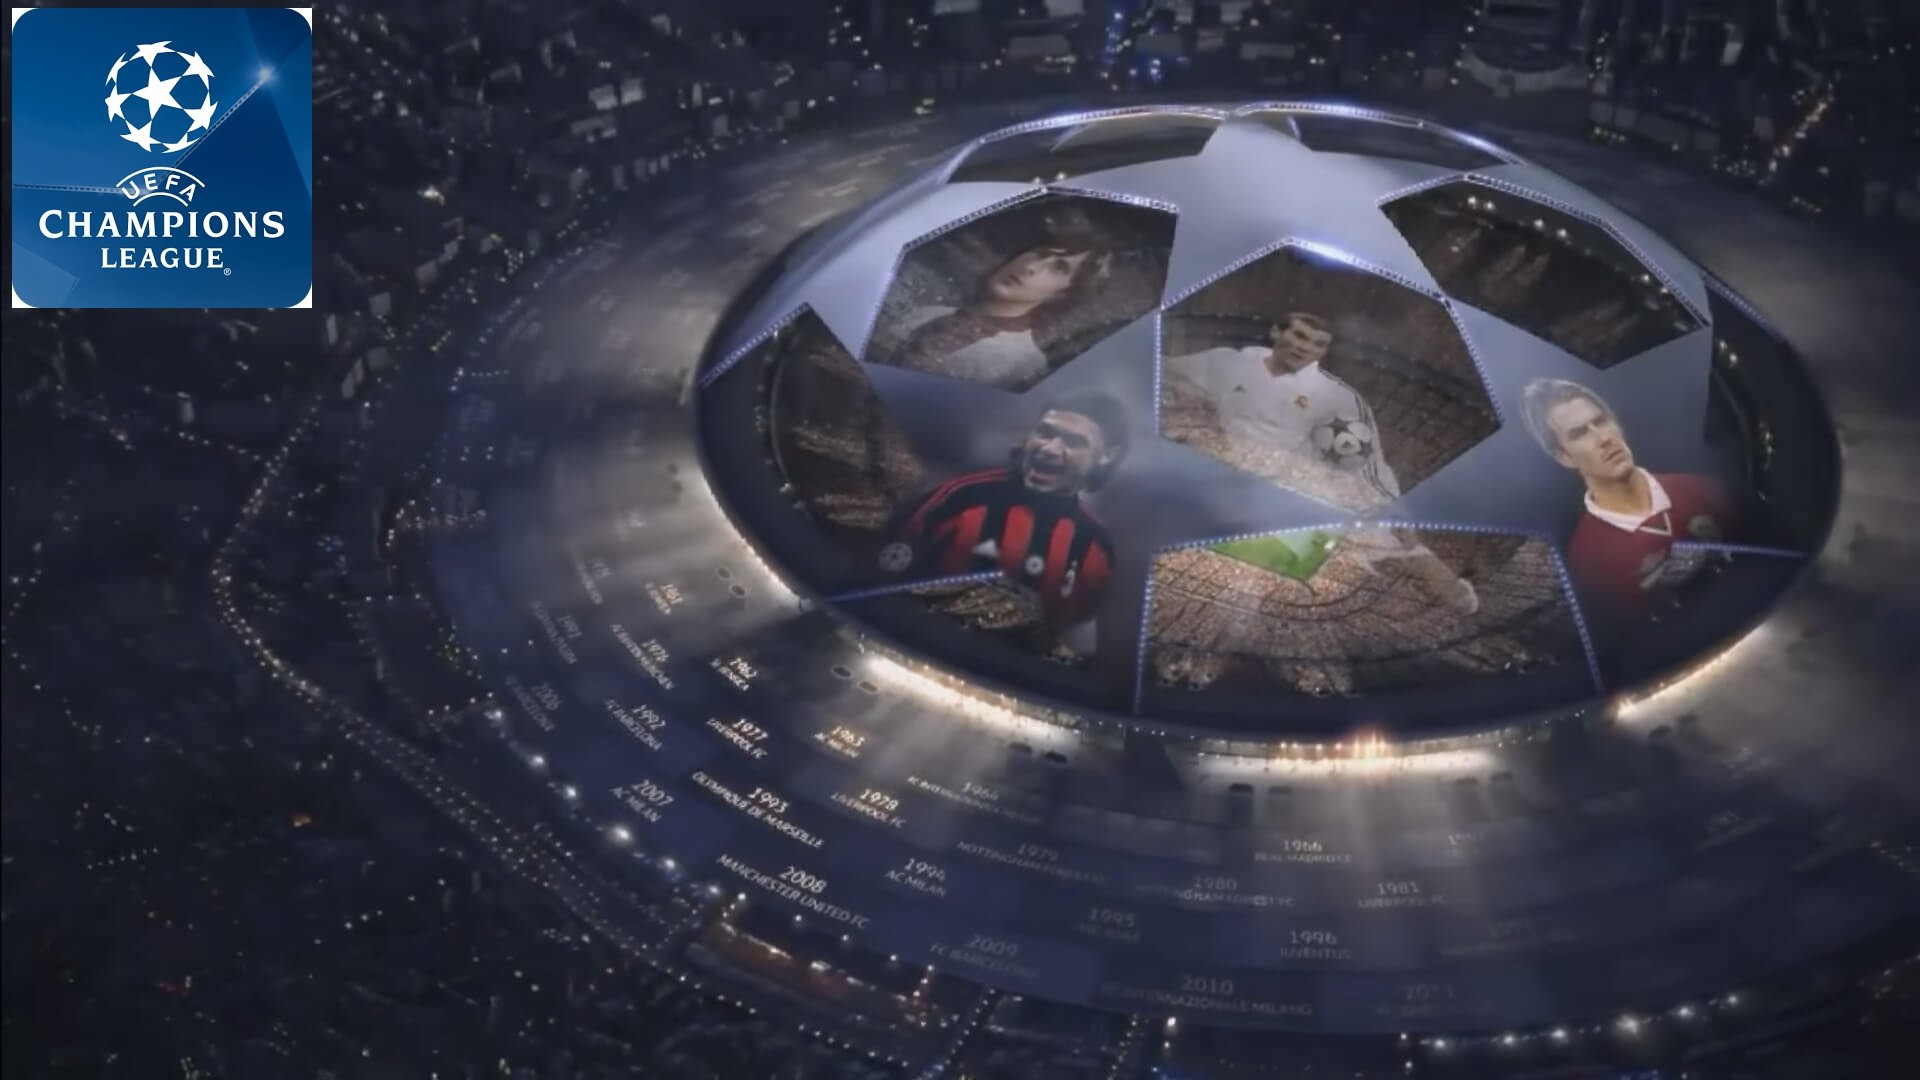 Res: 1920x1080, UEFA Champions League Wallpapers 16 - 1920 X 1080